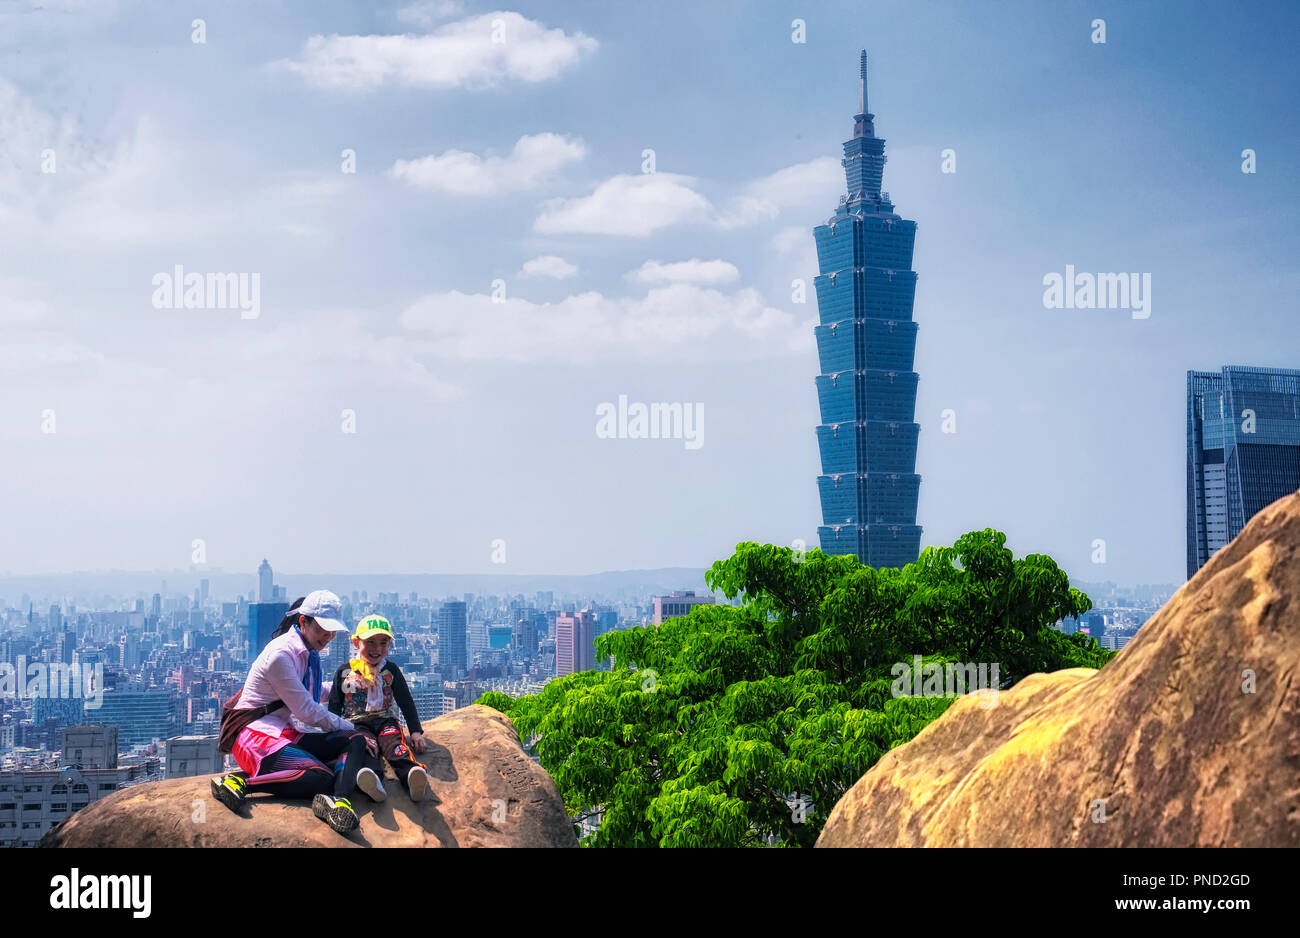 April 1, 2018.  Taipei, Taiwan.  A mother and daughter posing on rocks with Taipei 101 landmark building rising above generic architecture in the city - Stock Image